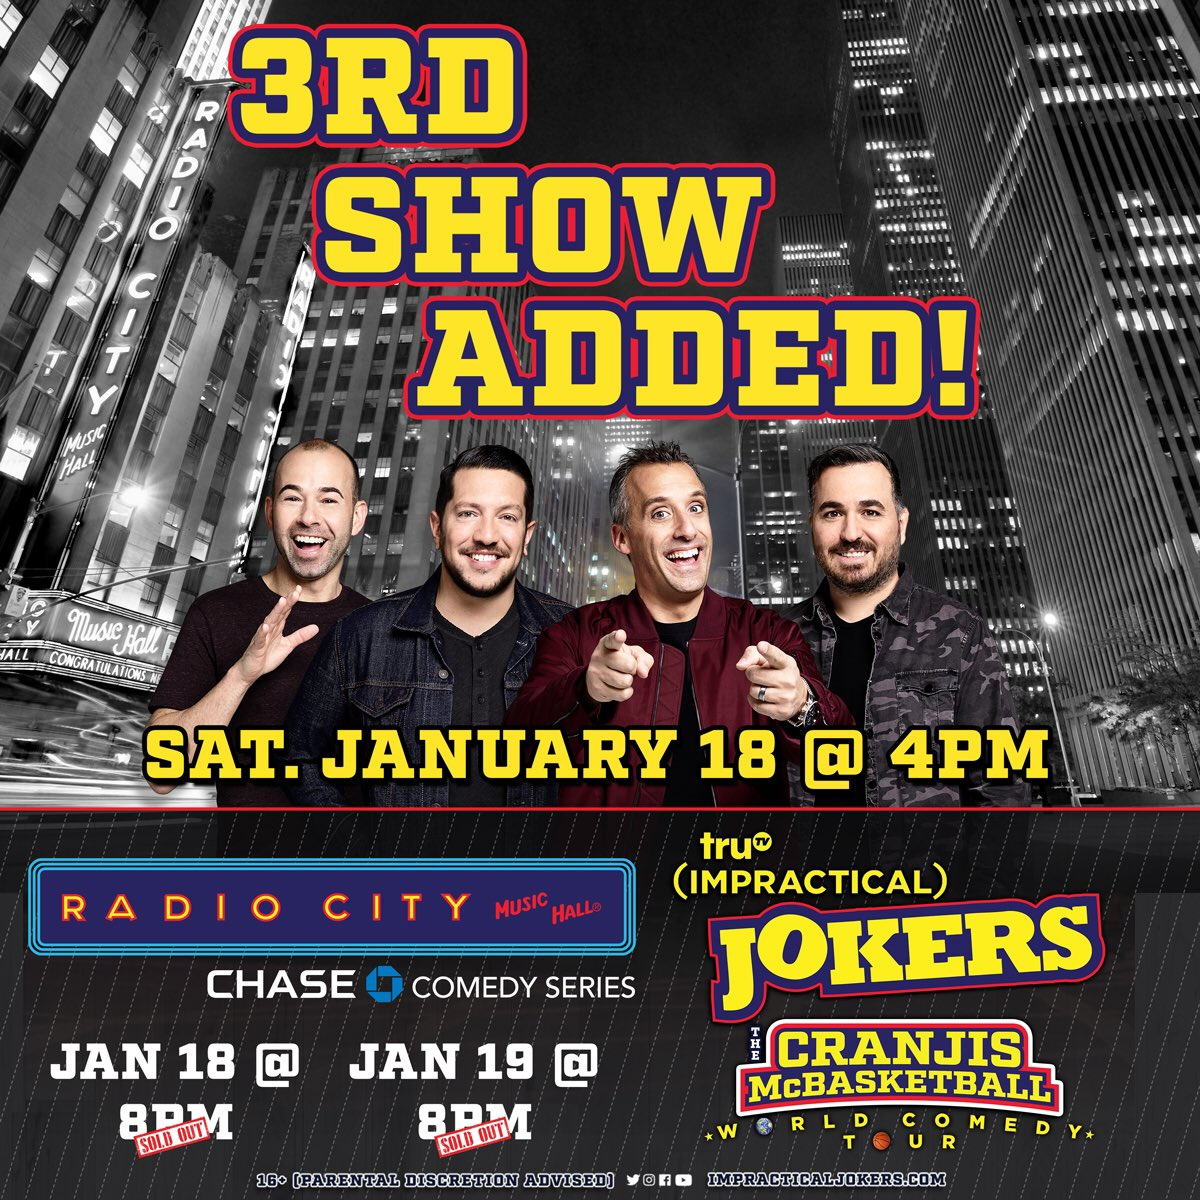 Pre-sale tickets are now available for our 4 PM show on January 18 at @RadioCity!! Get 'em while you can because the first two shows sold out quick! Tickets: https://smarturl.it/wv7xxo